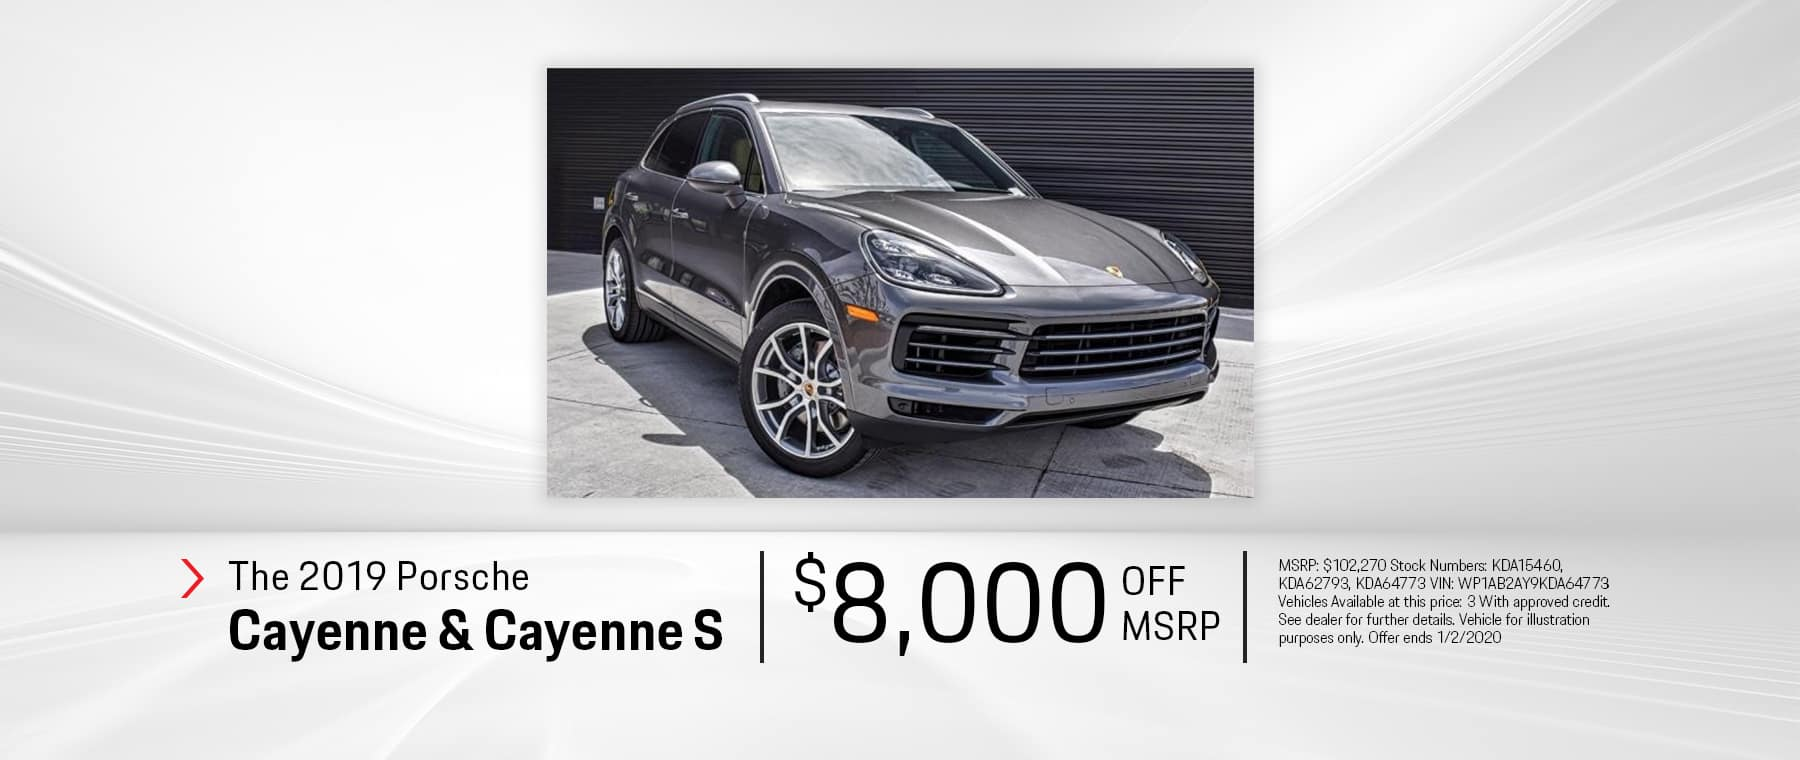 New 2019 Cayenne and Cayenne S $8K OFF